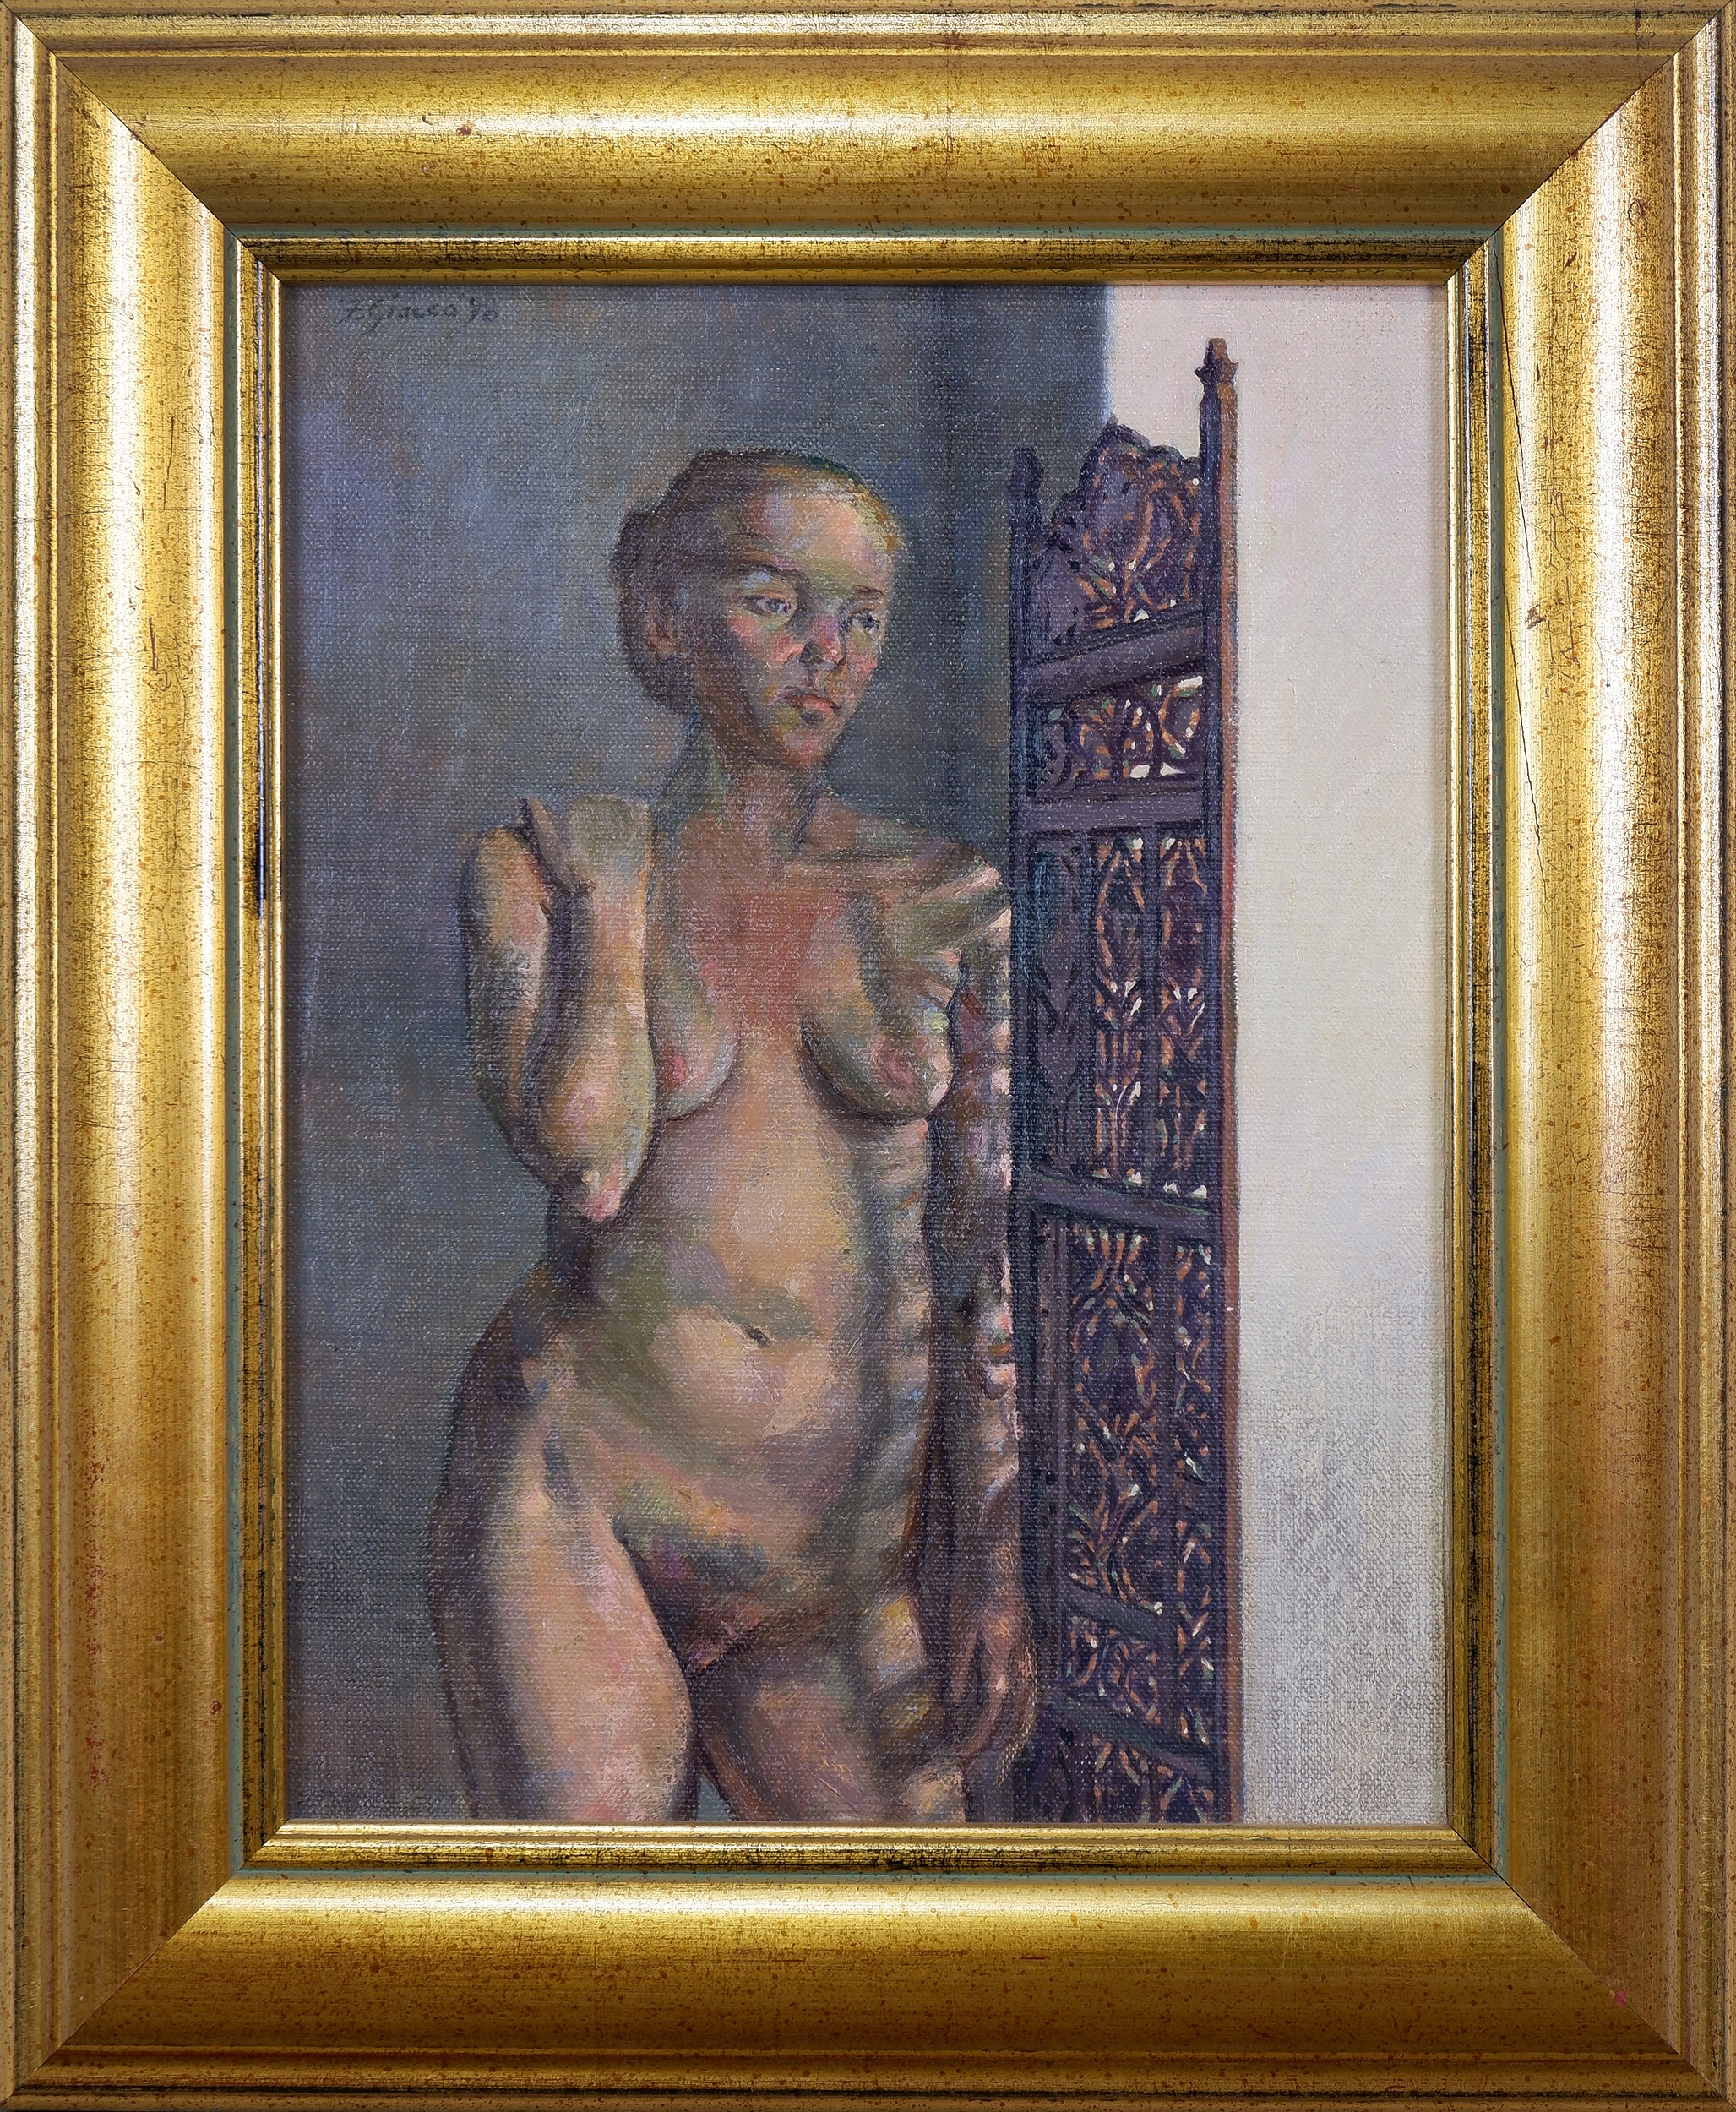 'Francis Giacco (born 1951), Confessional I 1998, Oil on Canvas on Board'